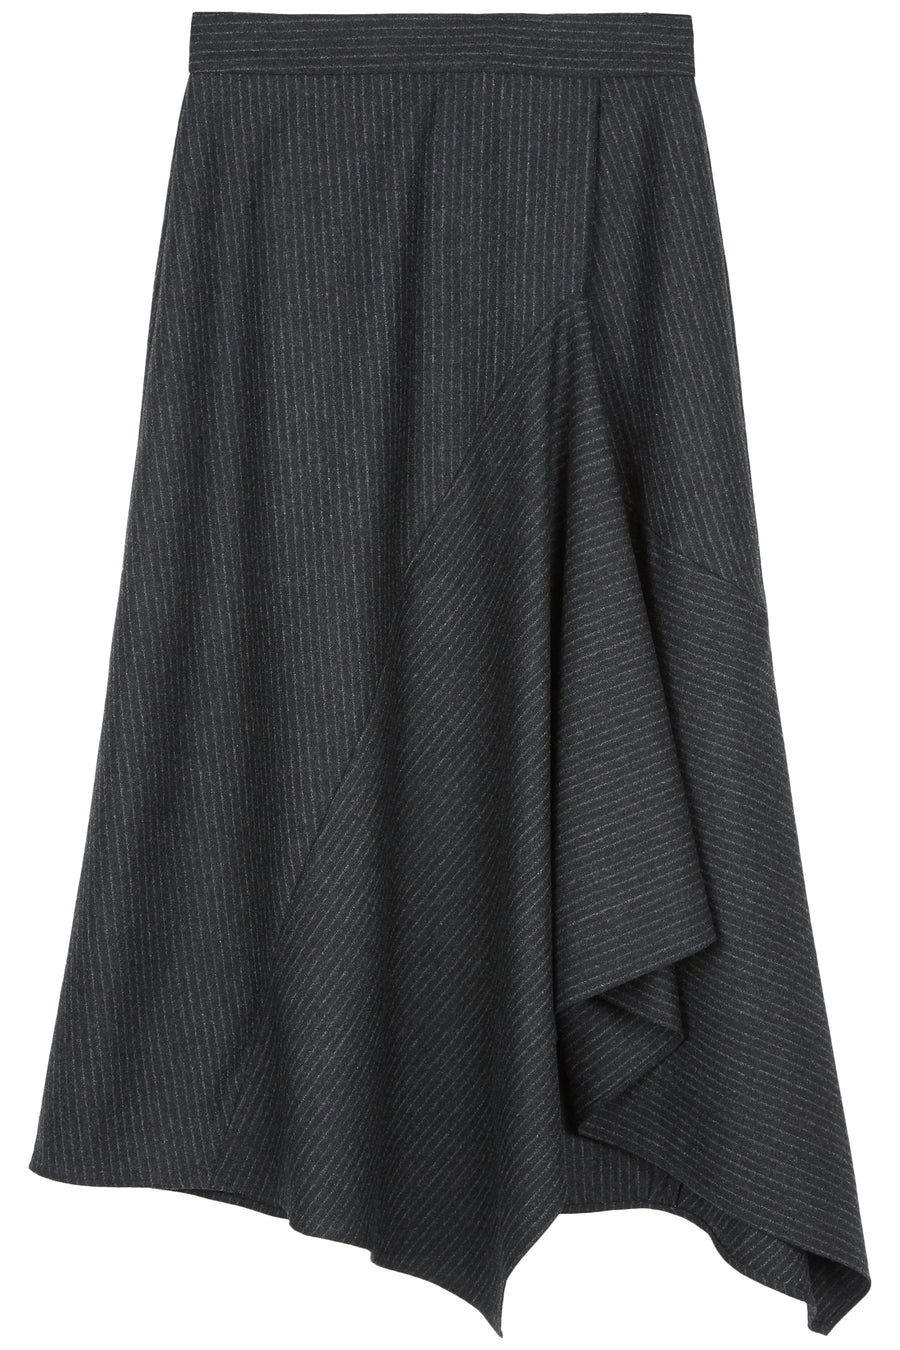 Black Irina Origami Stripe Skirt